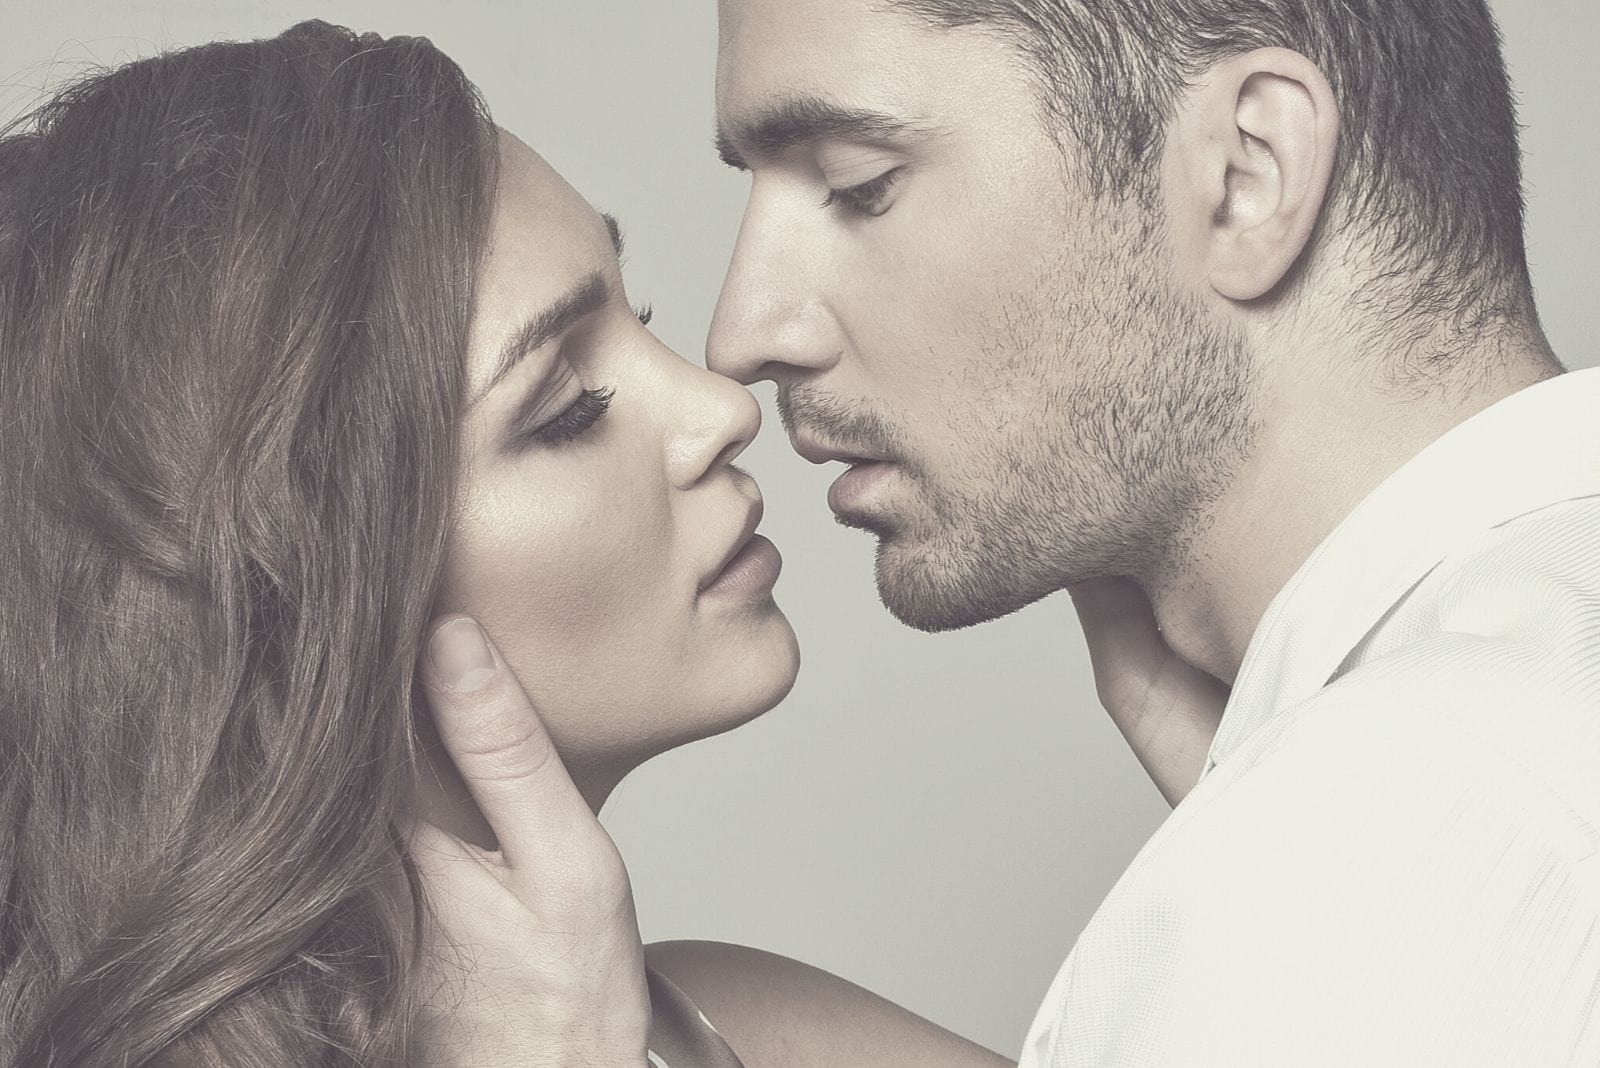 romantic beautiful couple about to kiss passionately in close up photography